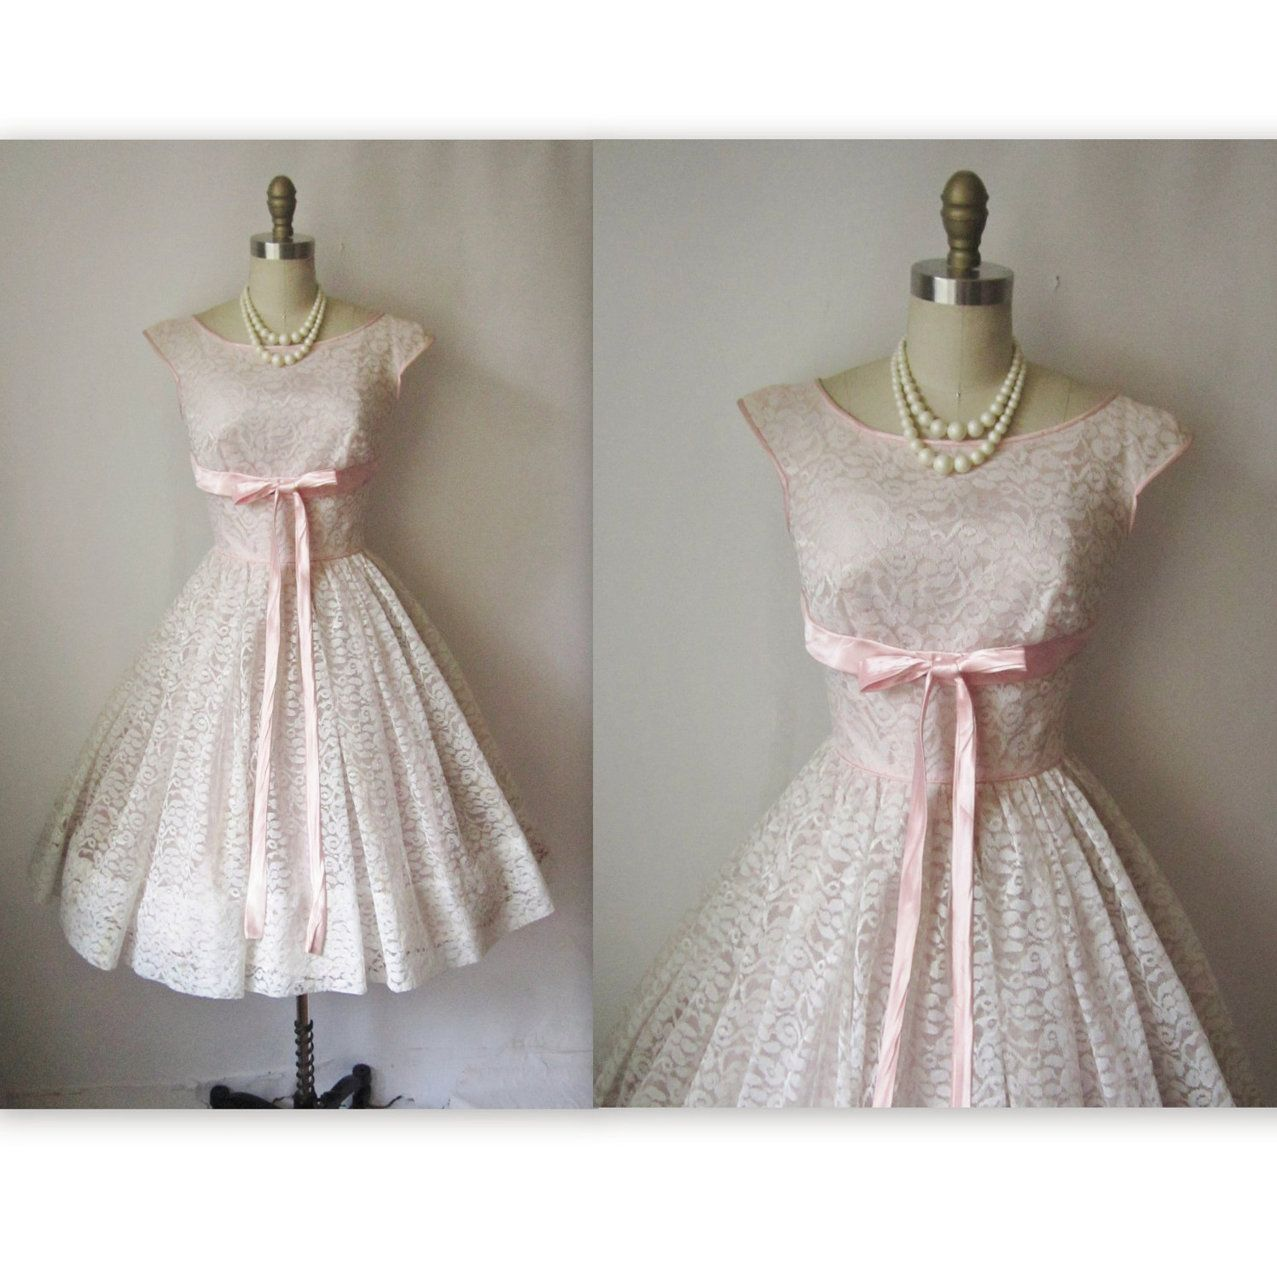 Cotton candy and pink lemonade i could eat this dress up vintage